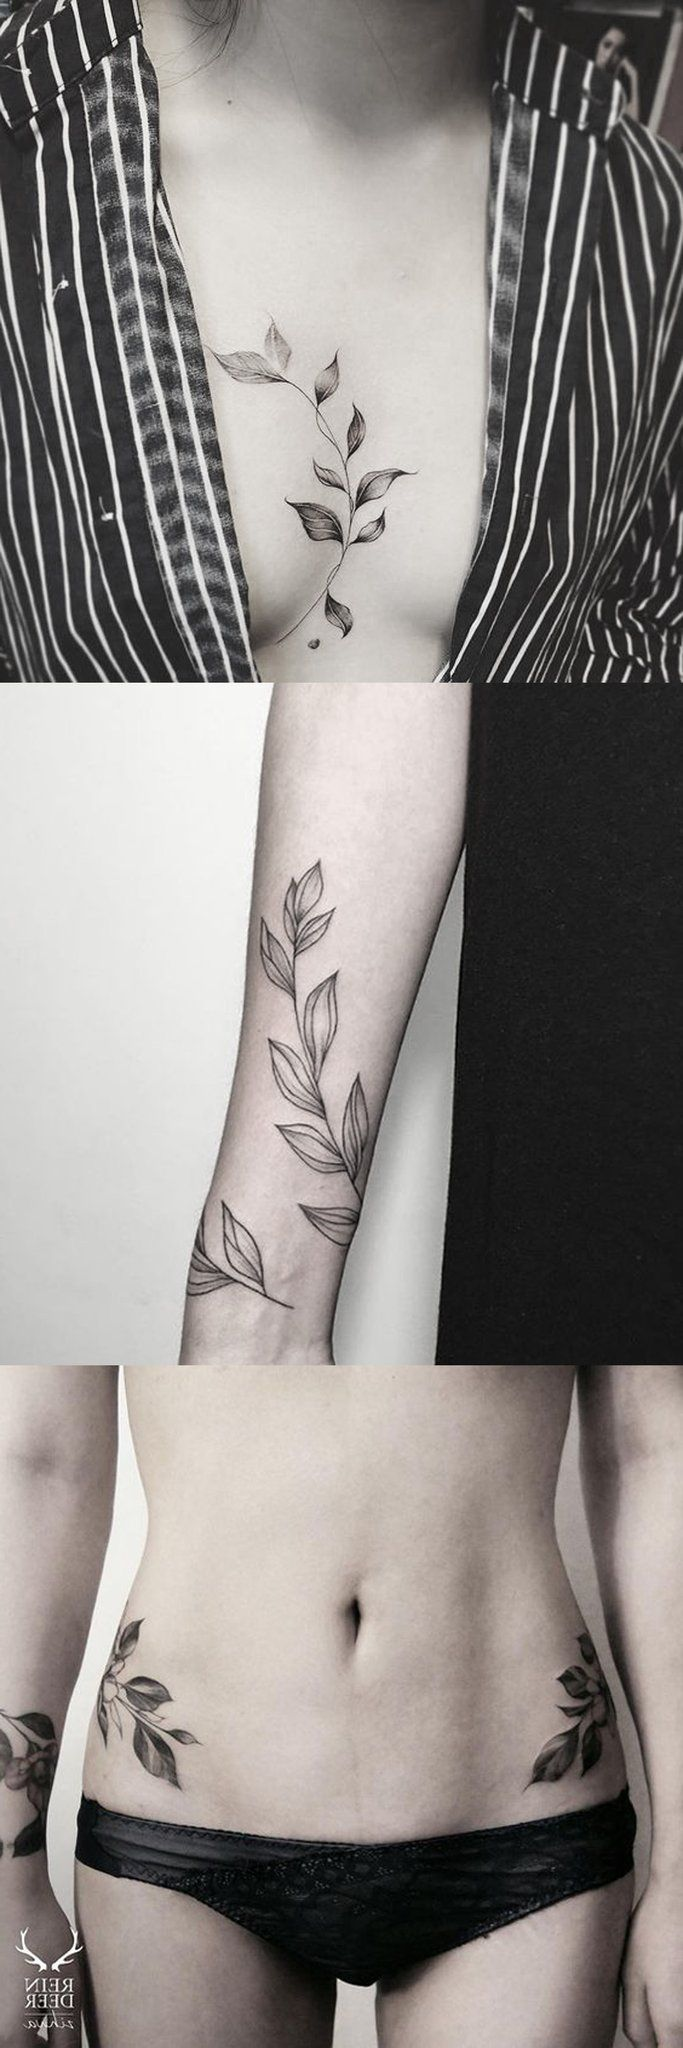 Cool tattoo designs for your hand  small unique tattoo ideas inspired by nature  tats that strike